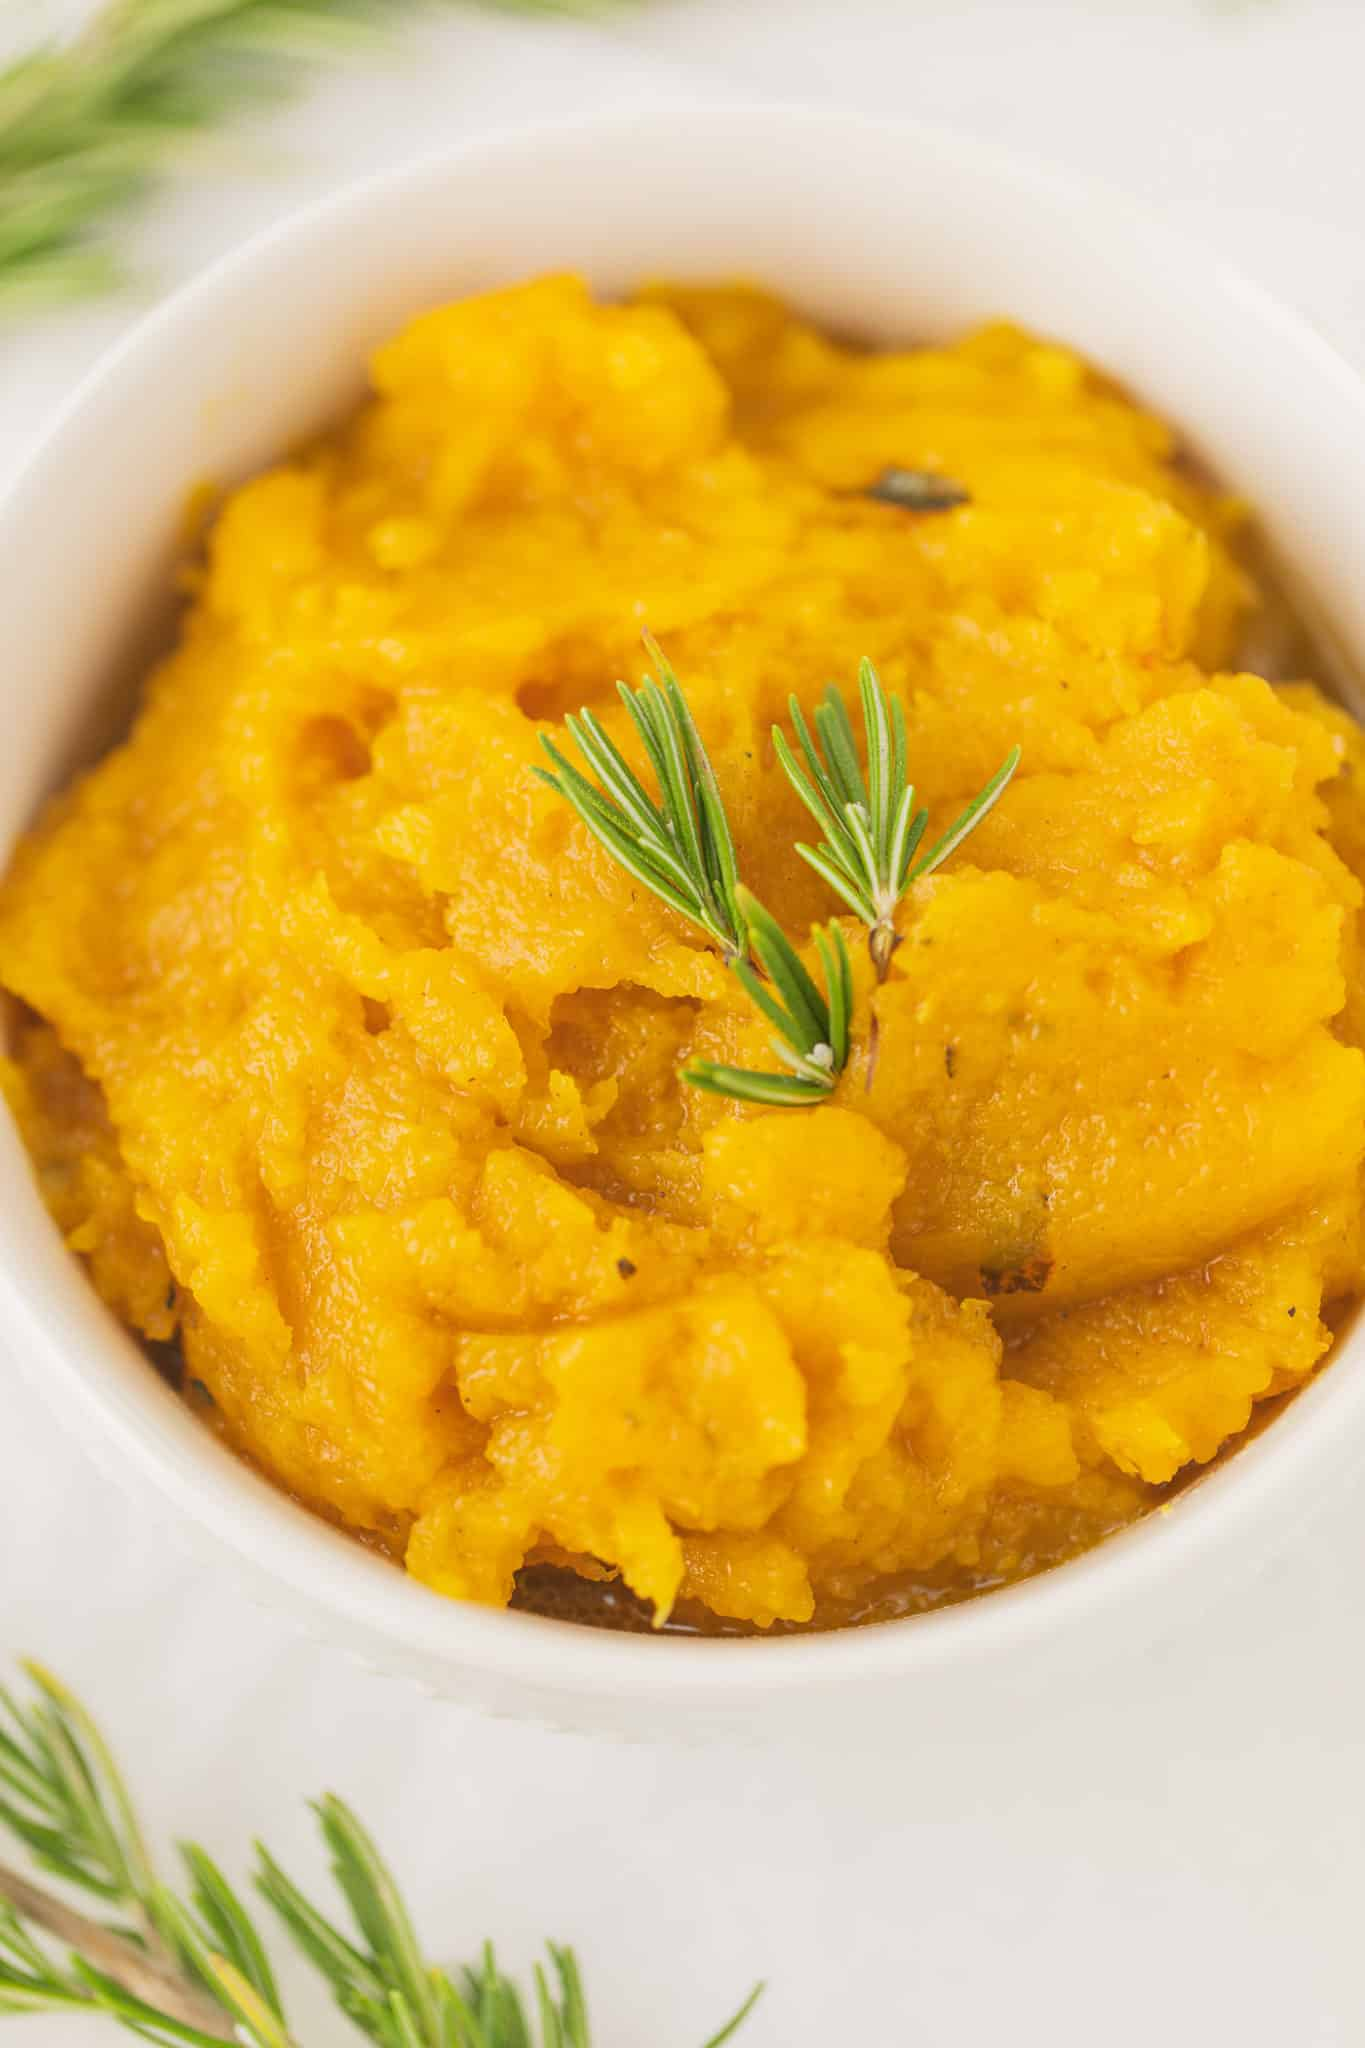 cooked acorn squash puree served in a white bowl with a sprig of fresh rosemary